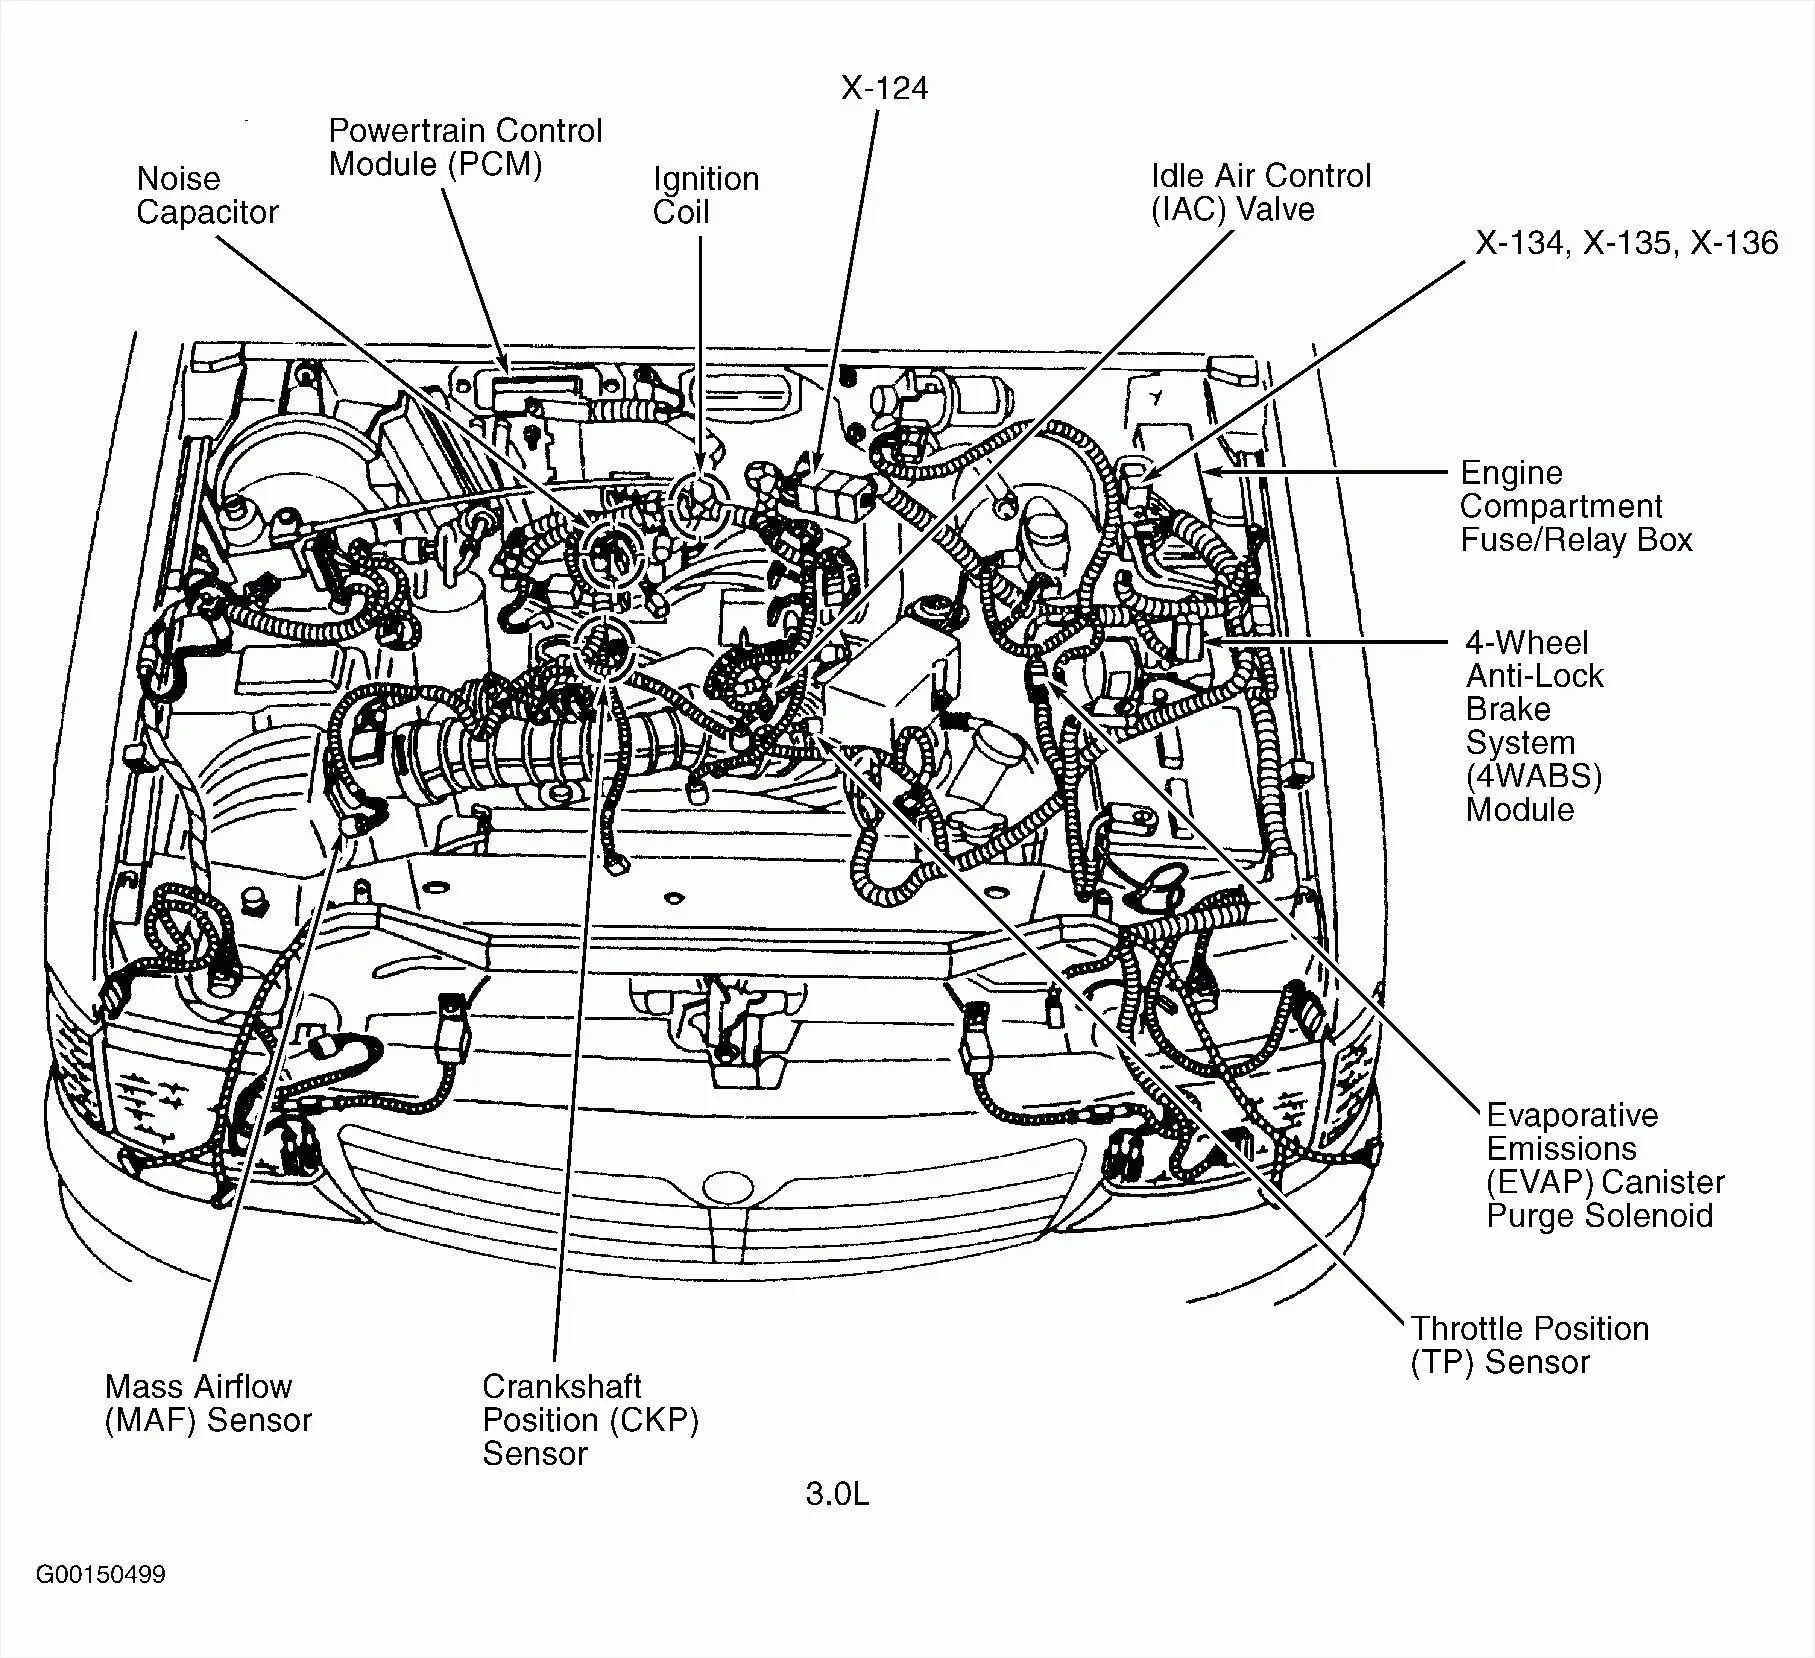 hight resolution of 2013 silverado 1500 engine diagram wiring diagram list 2010 chevy silverado 1500 engine diagram